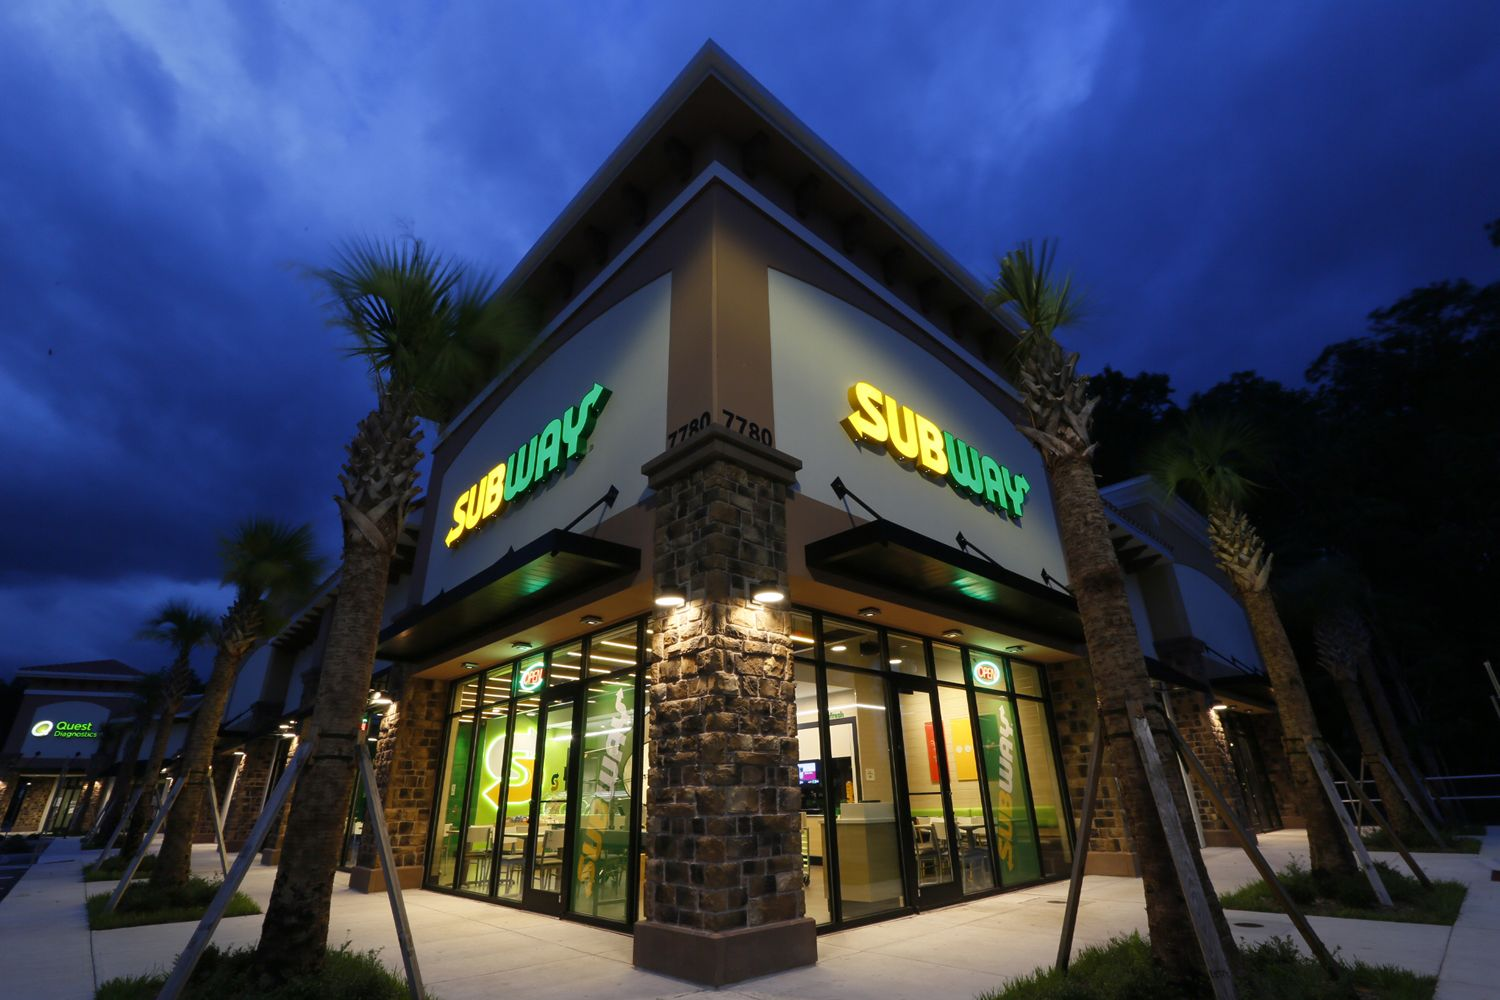 Subway Restaurant exterior view